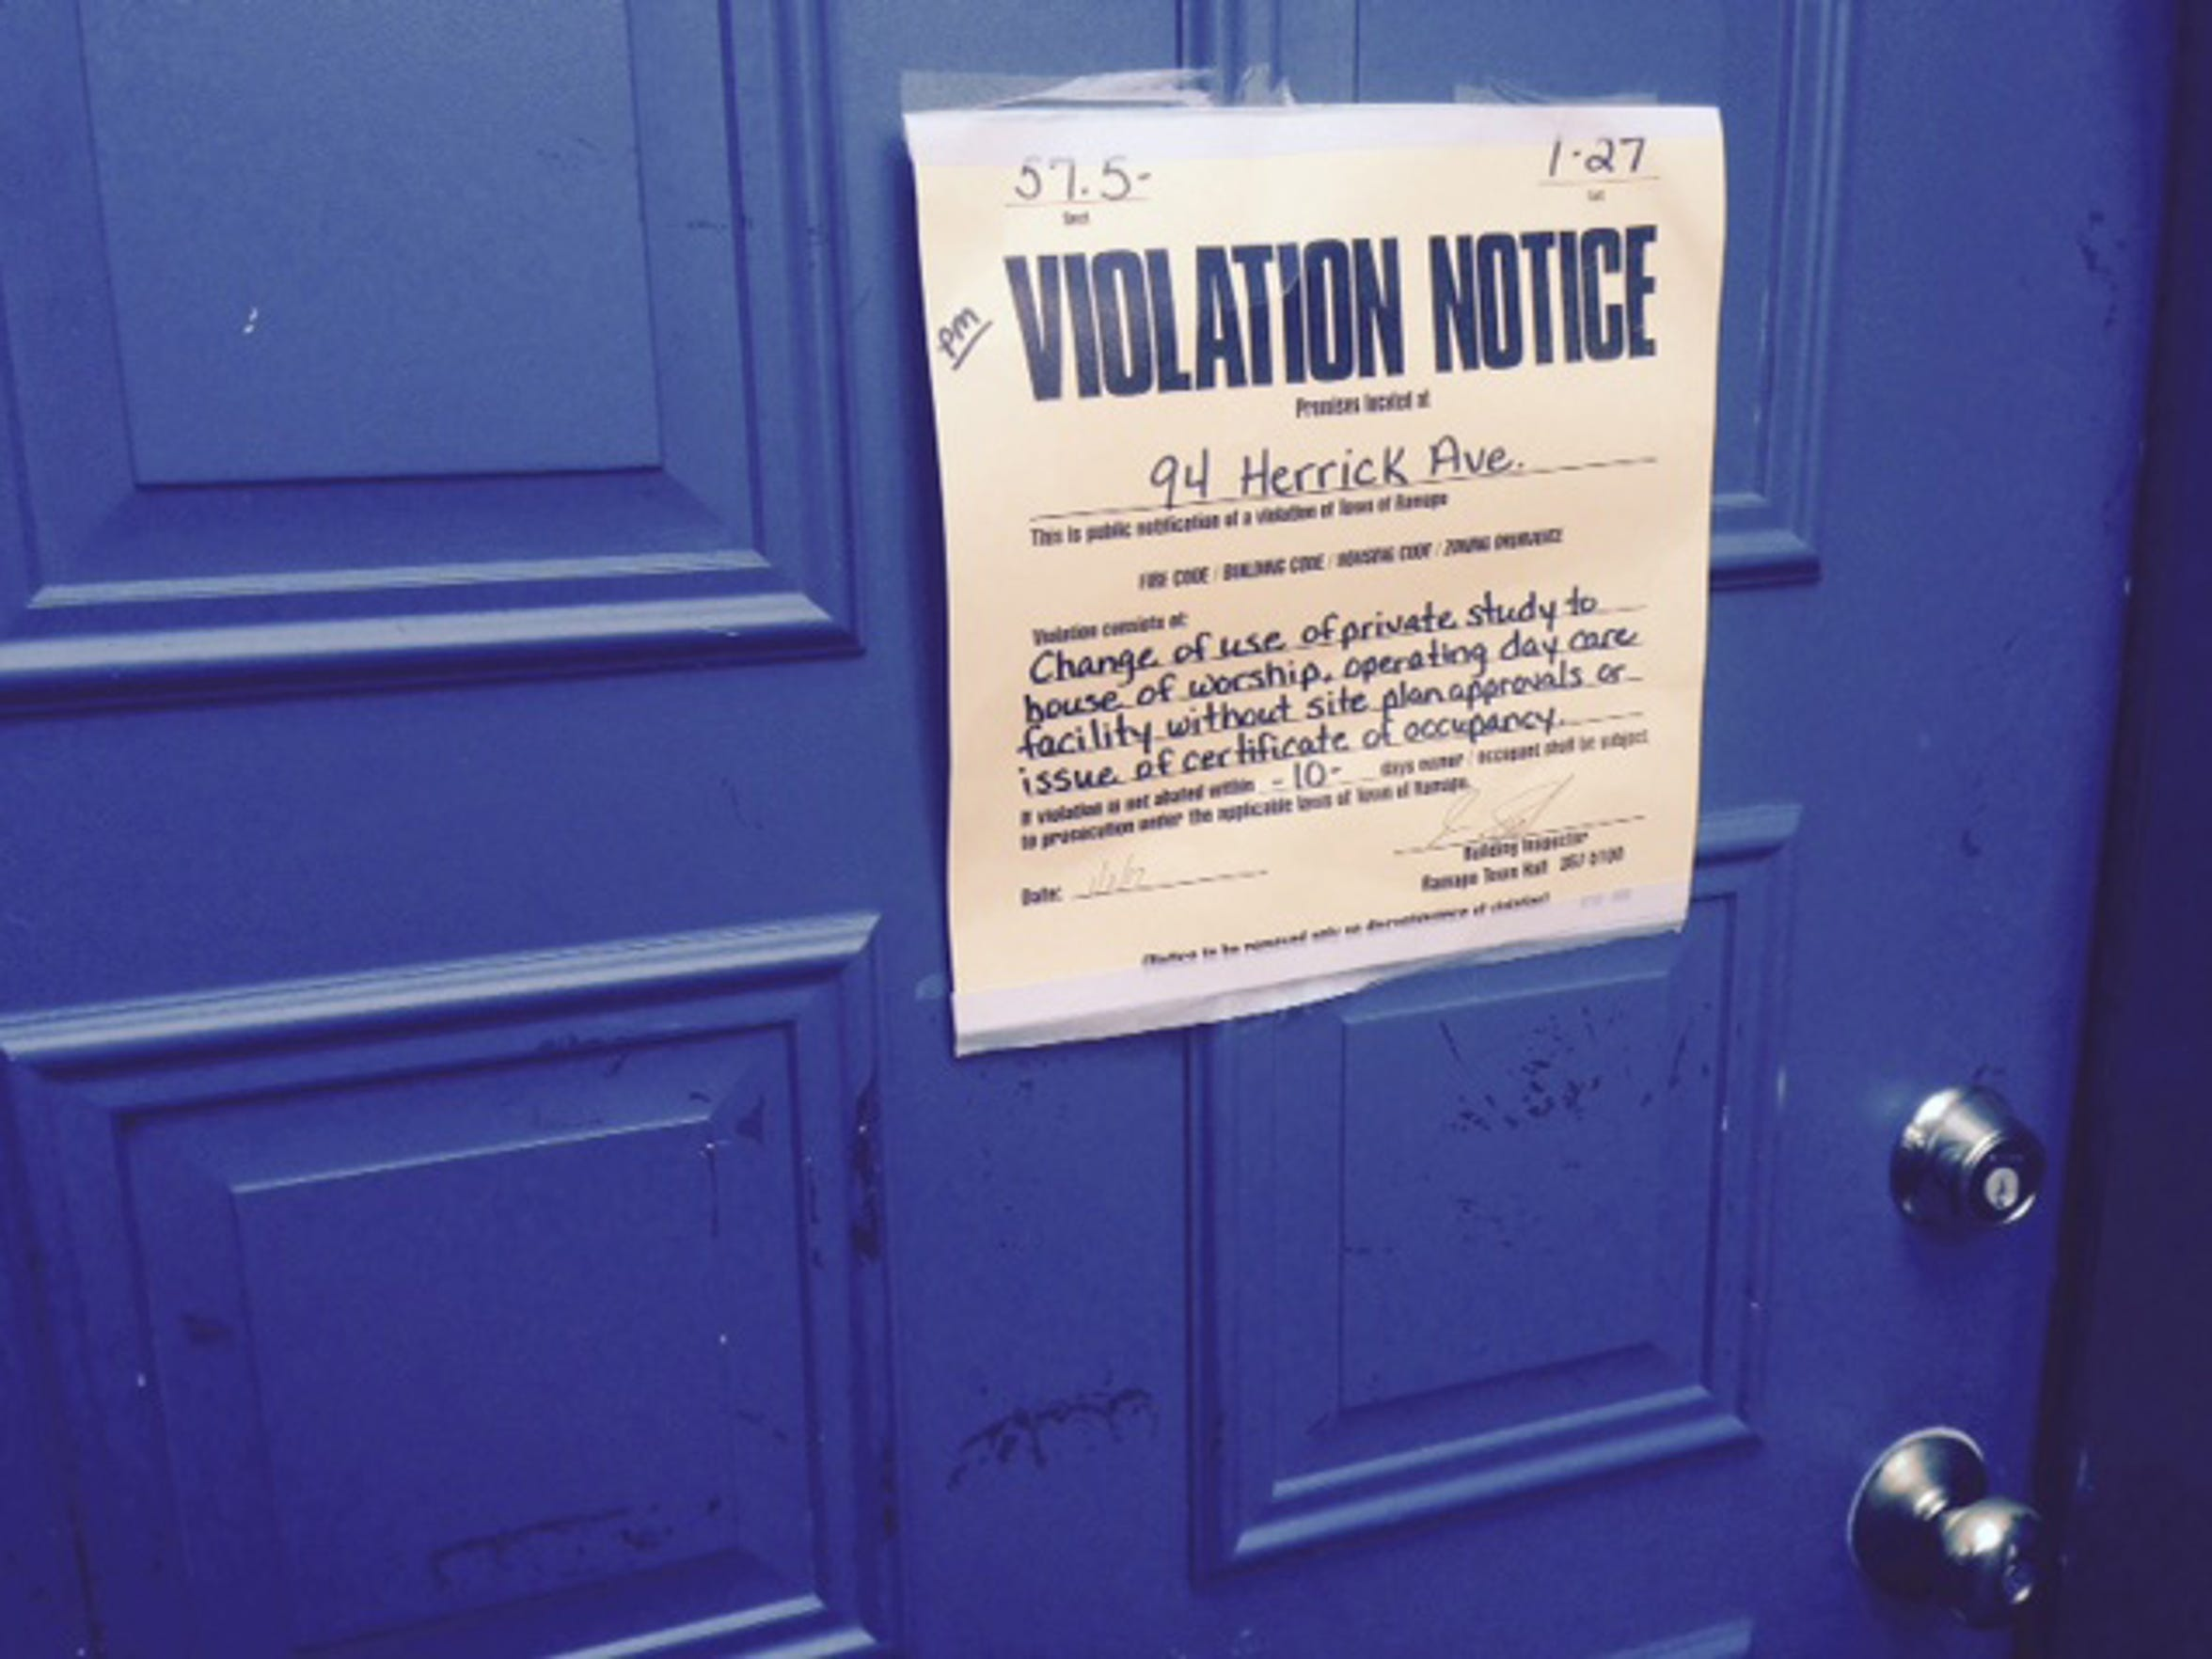 Ramapo violation notice posted on the door of 94 Herrick